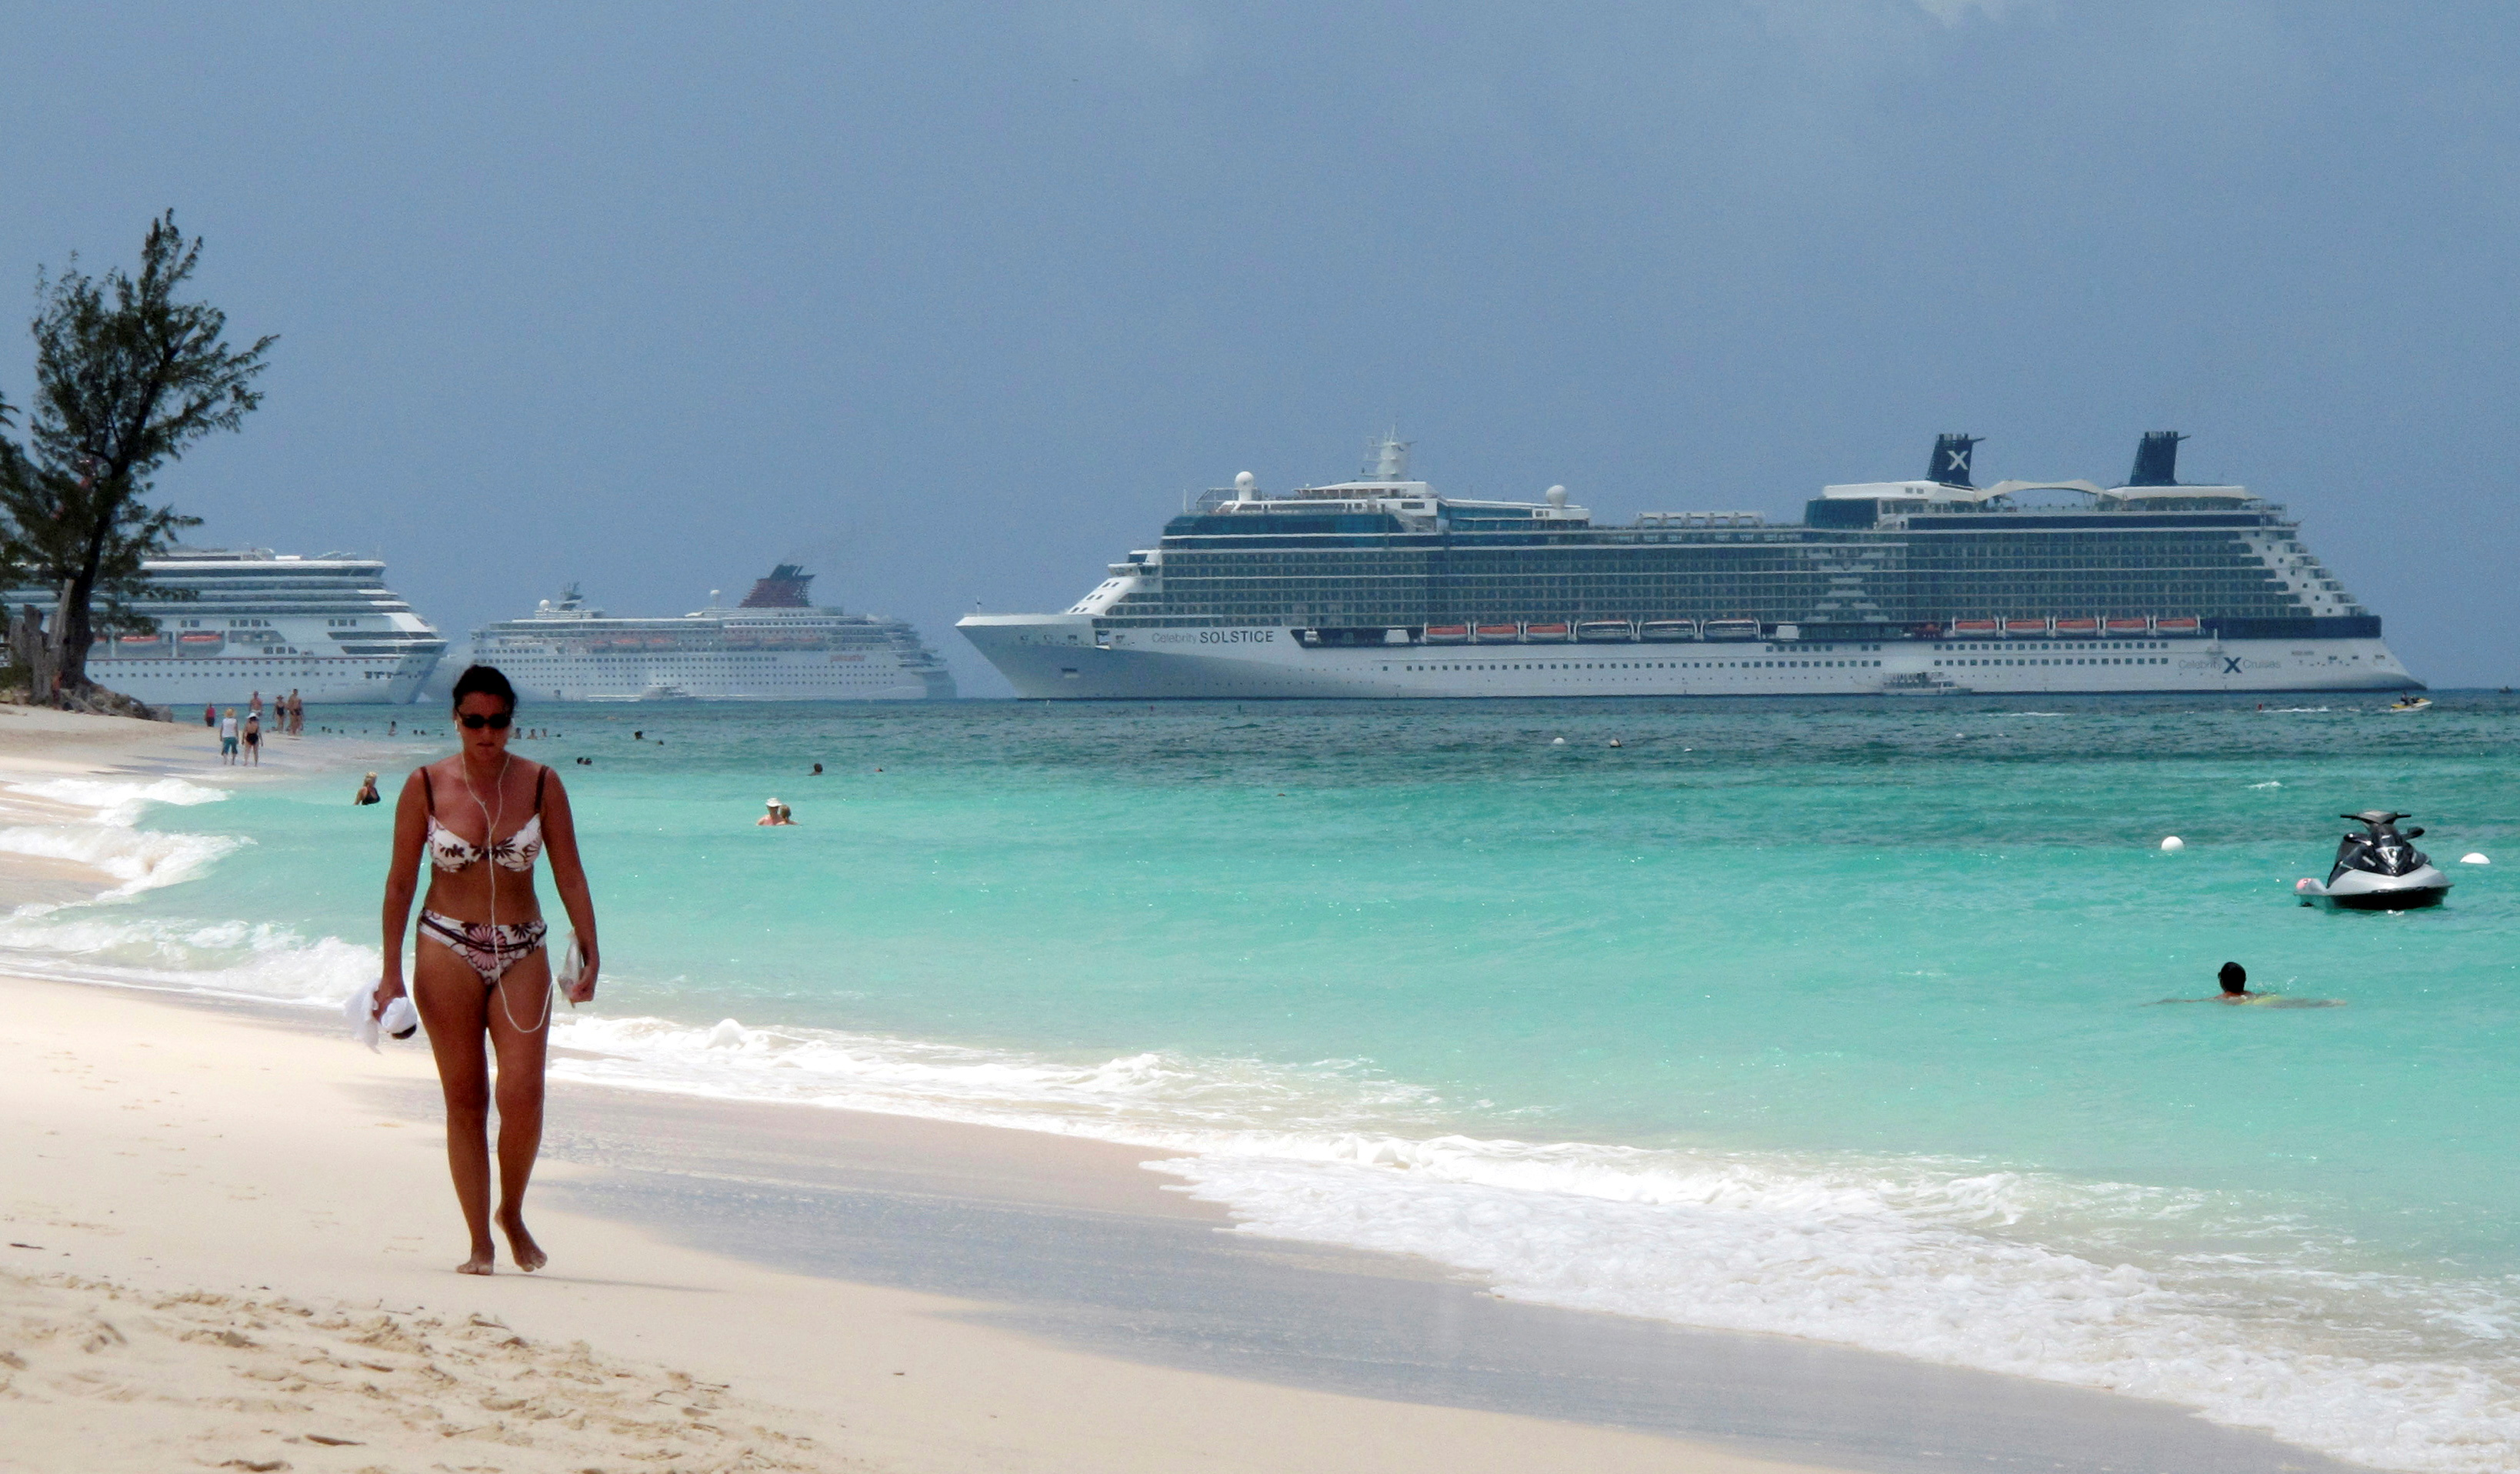 A woman walks along Seven Mile Beach with three cruise ships anchored in port in George Town, Cayman Islands, April 27, 2010. REUTERS/Gary Hershorn